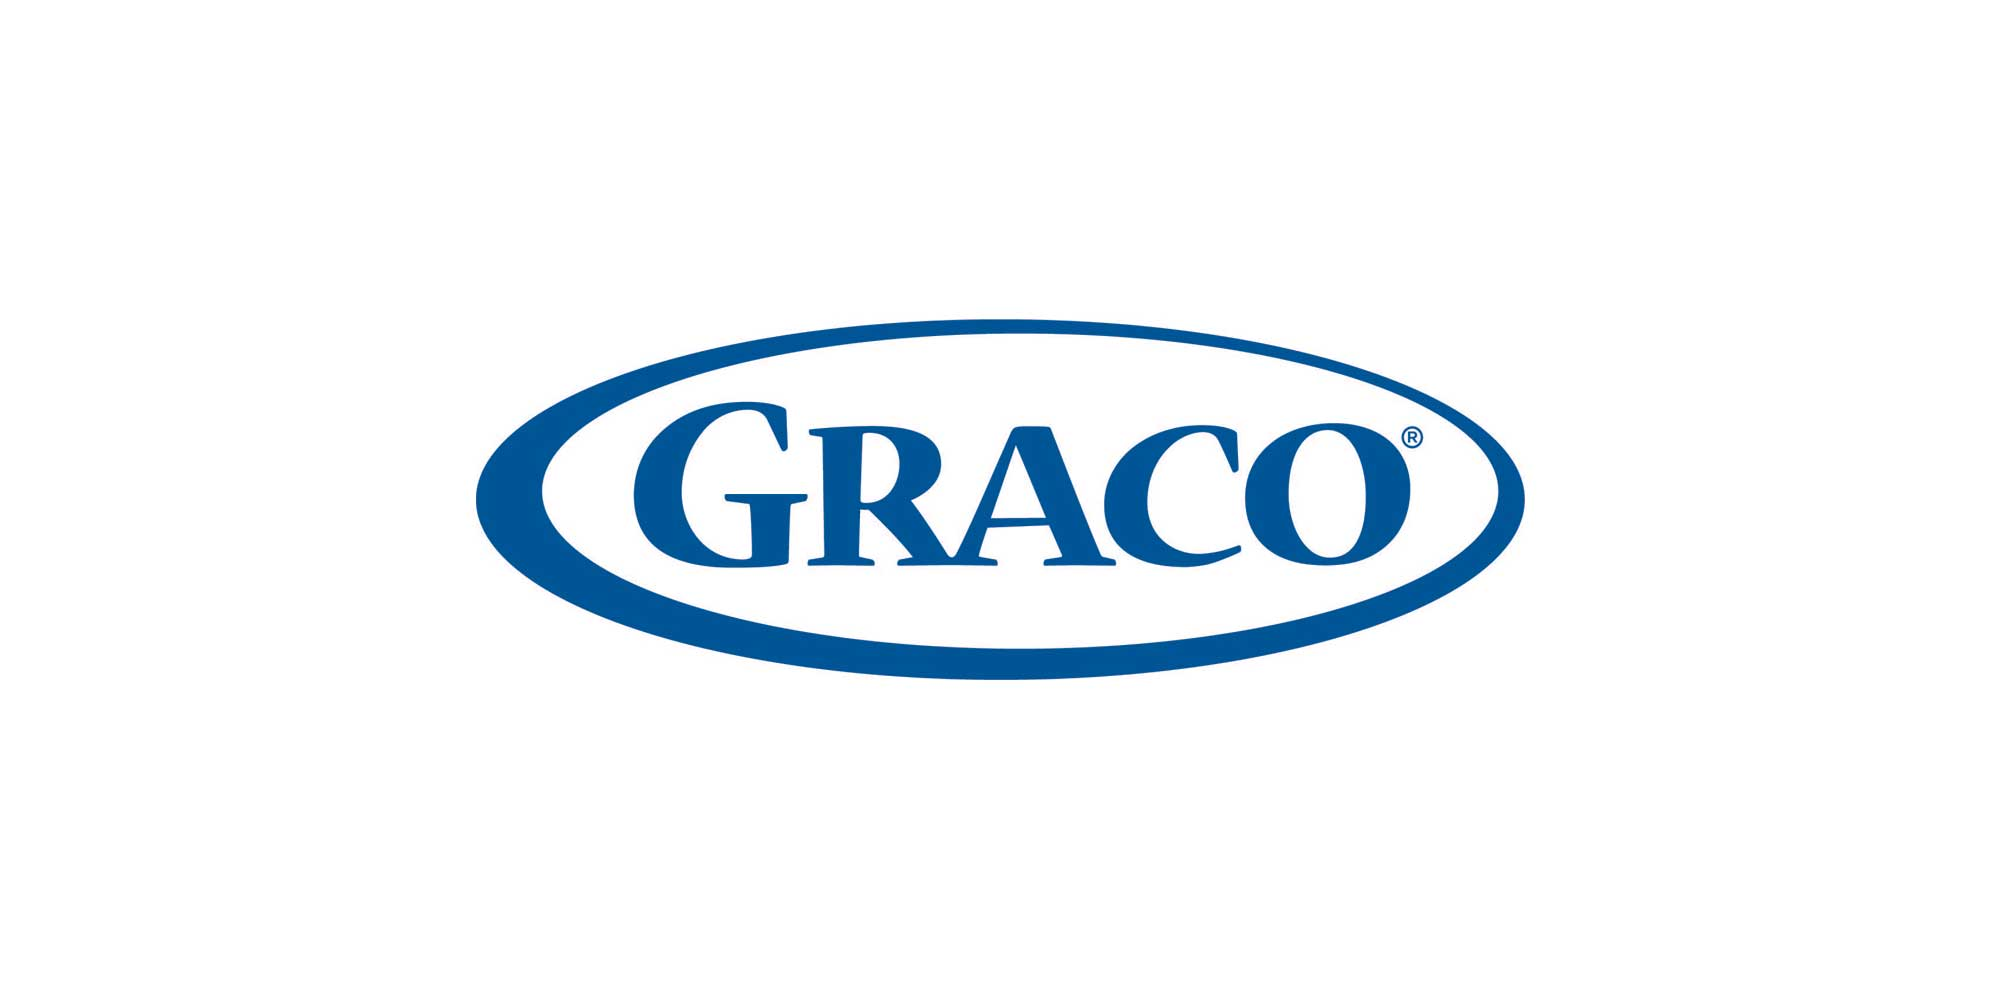 Learn more about the Graco SnugRide SnugLock family of products at www.gracobaby.com/snuglock at www.gracobaby.com